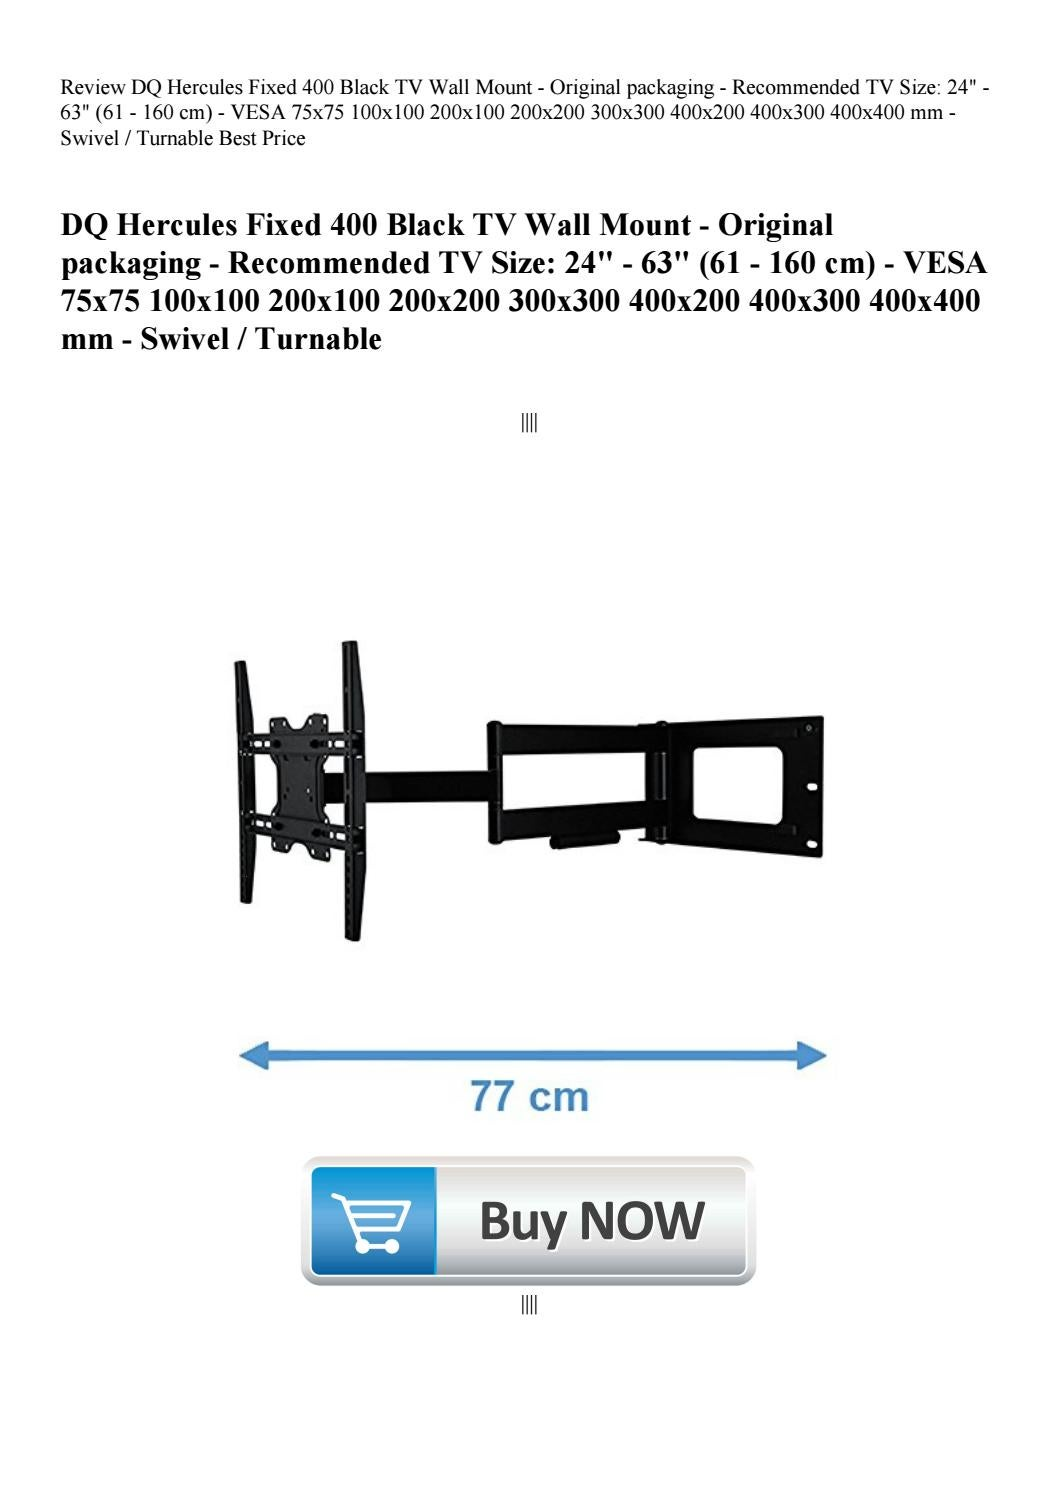 Review Dq Hercules Fixed 400 Black Tv Wall Mount Original Packaging Recommended Tv Size 24 63 By Roycerosario71 Issuu